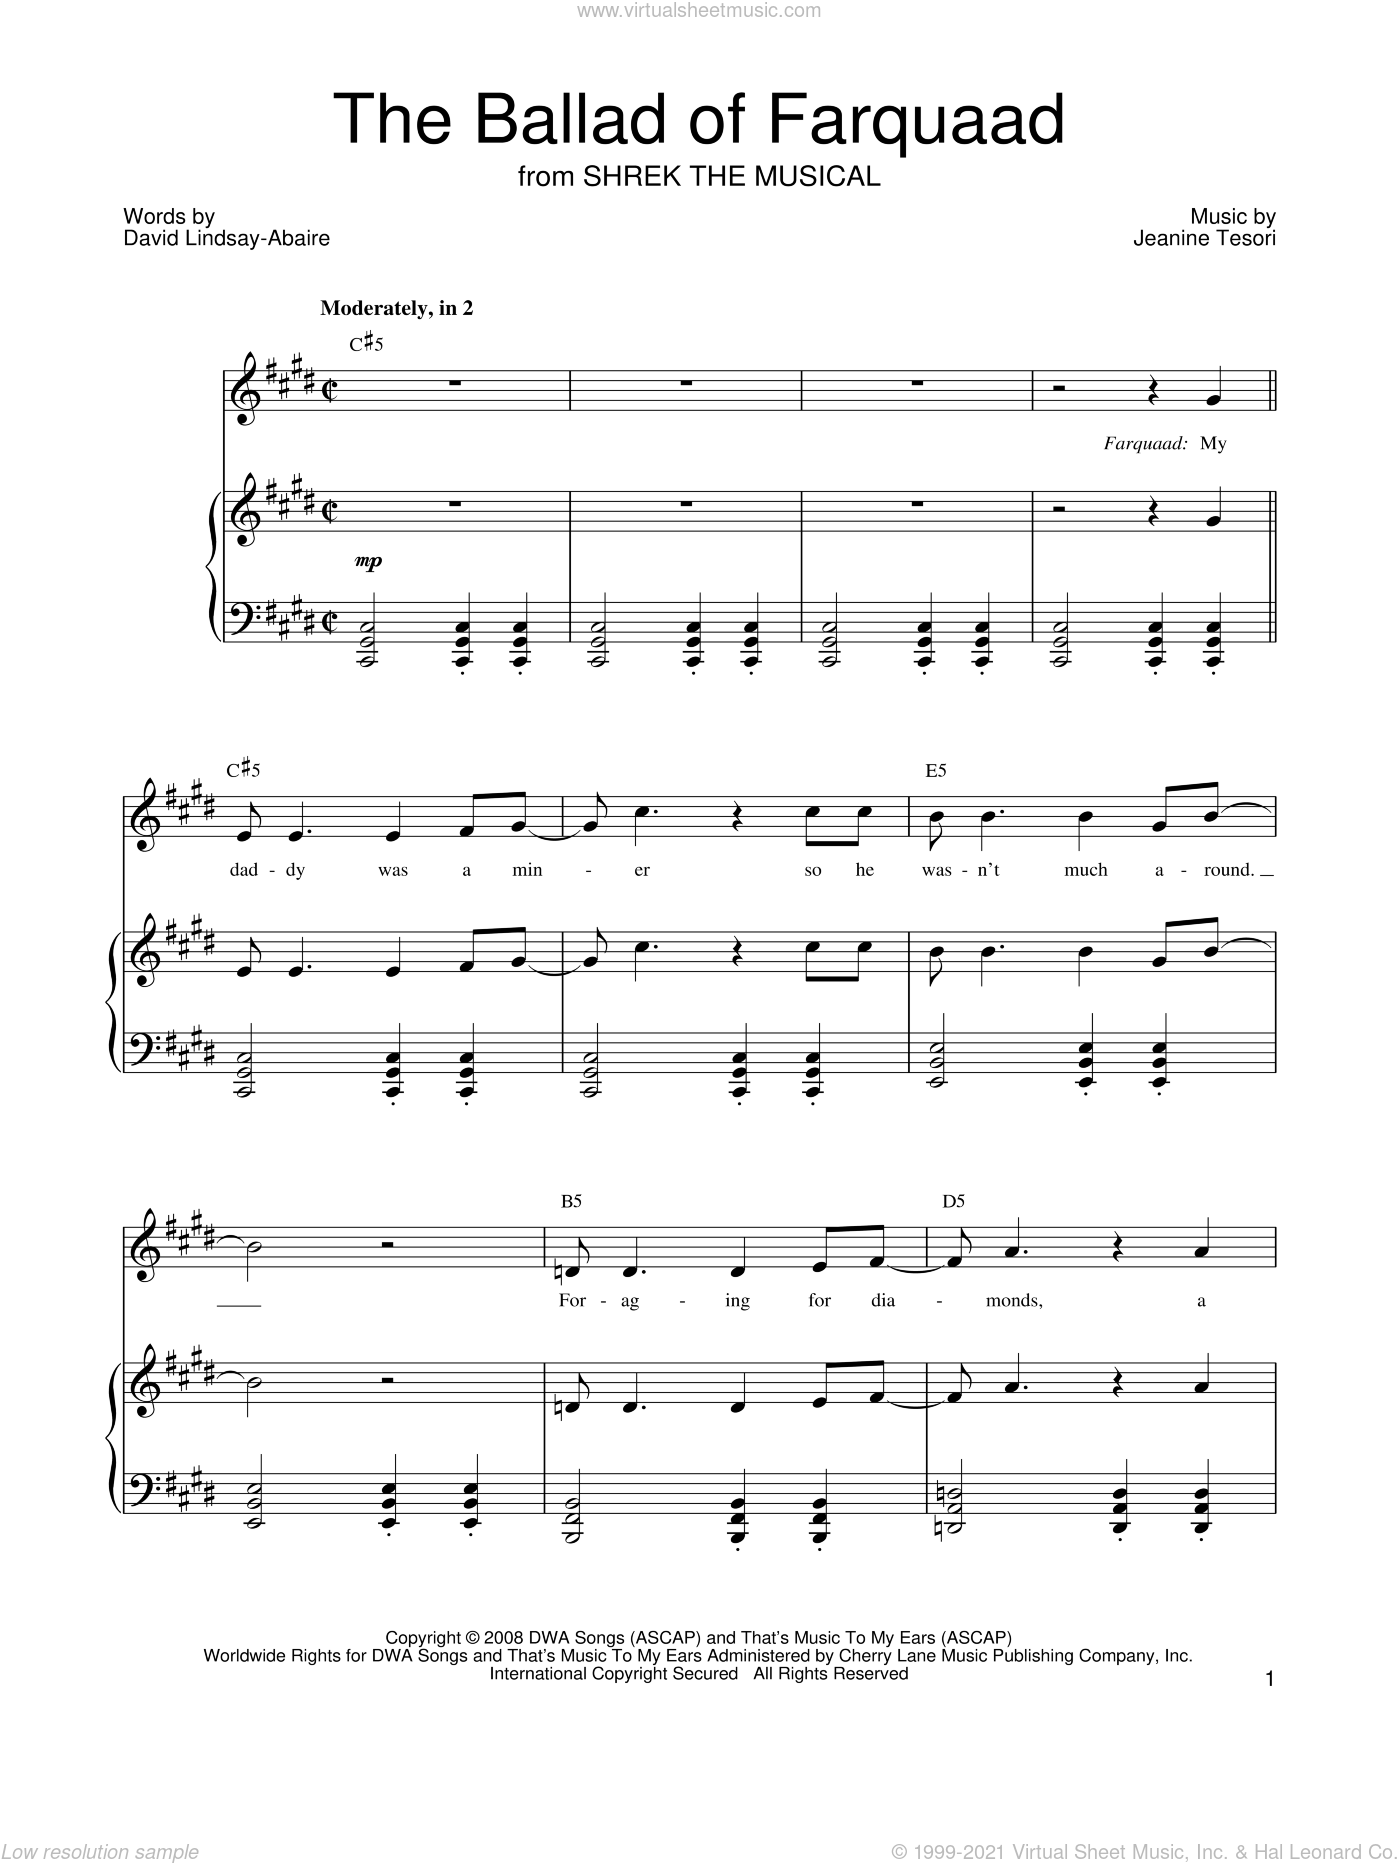 The Ballad of Farquaad sheet music for voice, piano or guitar by Jeanine Tesori